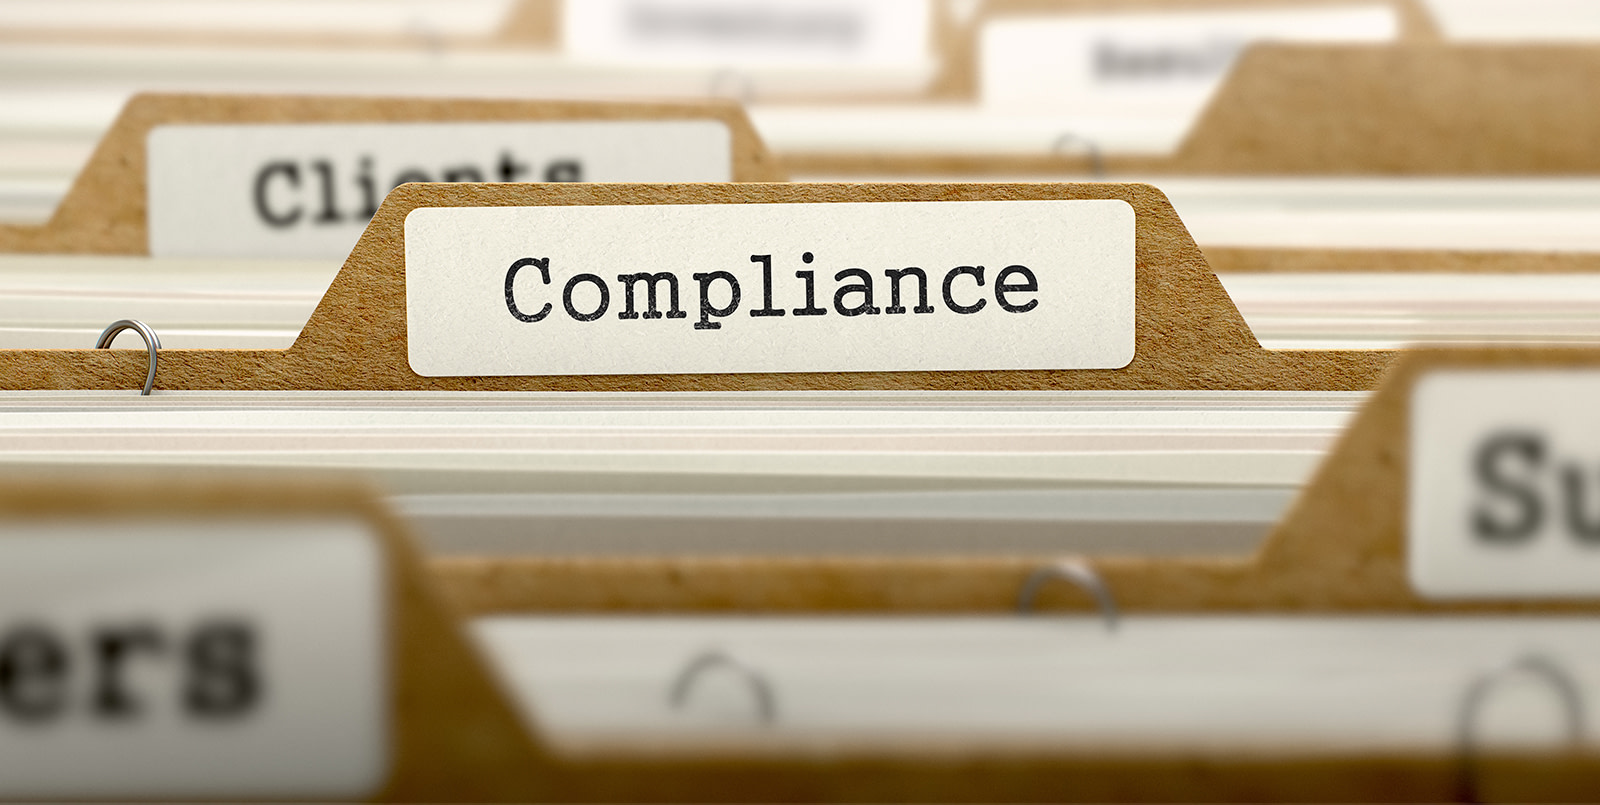 Get ahead of compliance